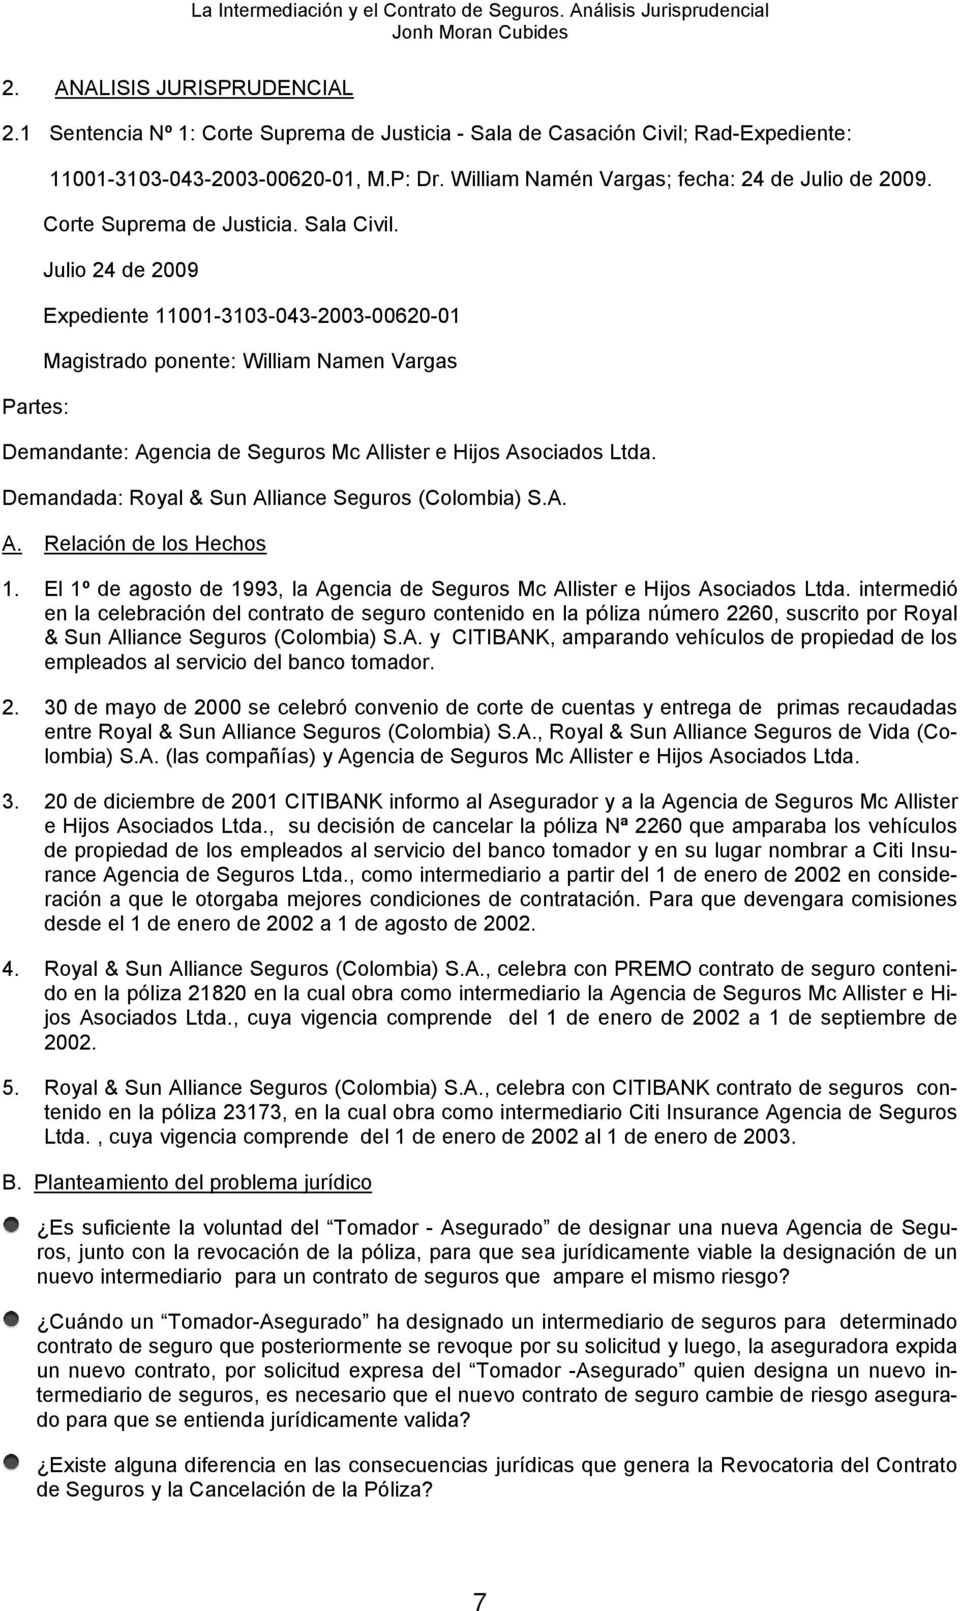 Julio 24 de 2009 Expediente 11001-3103-043-2003-00620-01 Magistrado ponente: William Namen Vargas Demandante: Agencia de Seguros Mc Allister e Hijos Asociados Ltda.